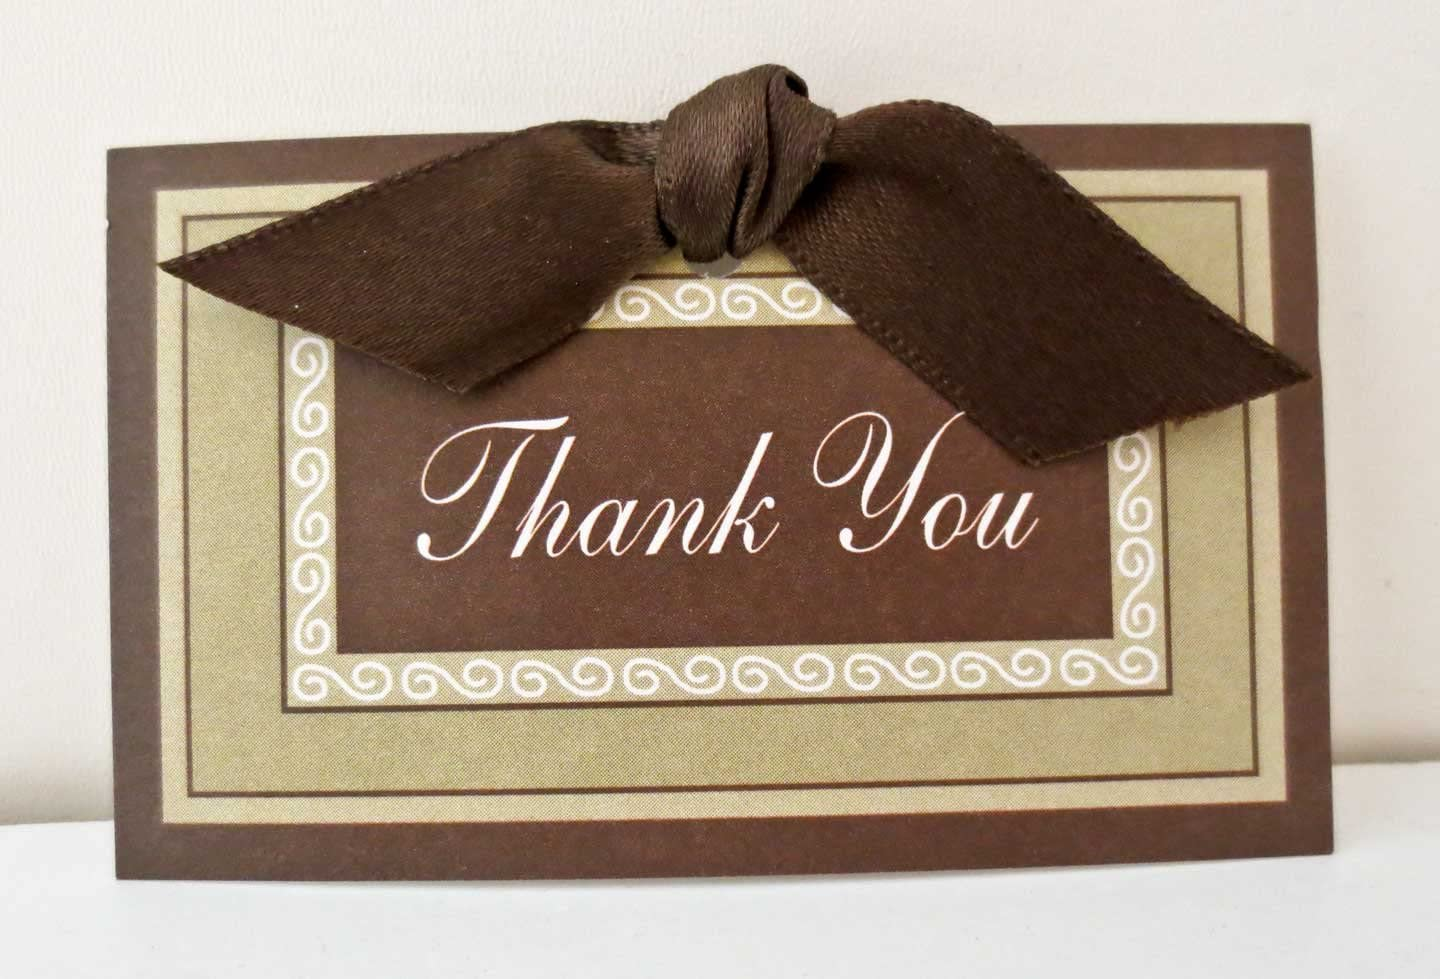 Pack of 30 Thank You Standouts with Sticky Adhesive and Ribbon, Brown colors with border